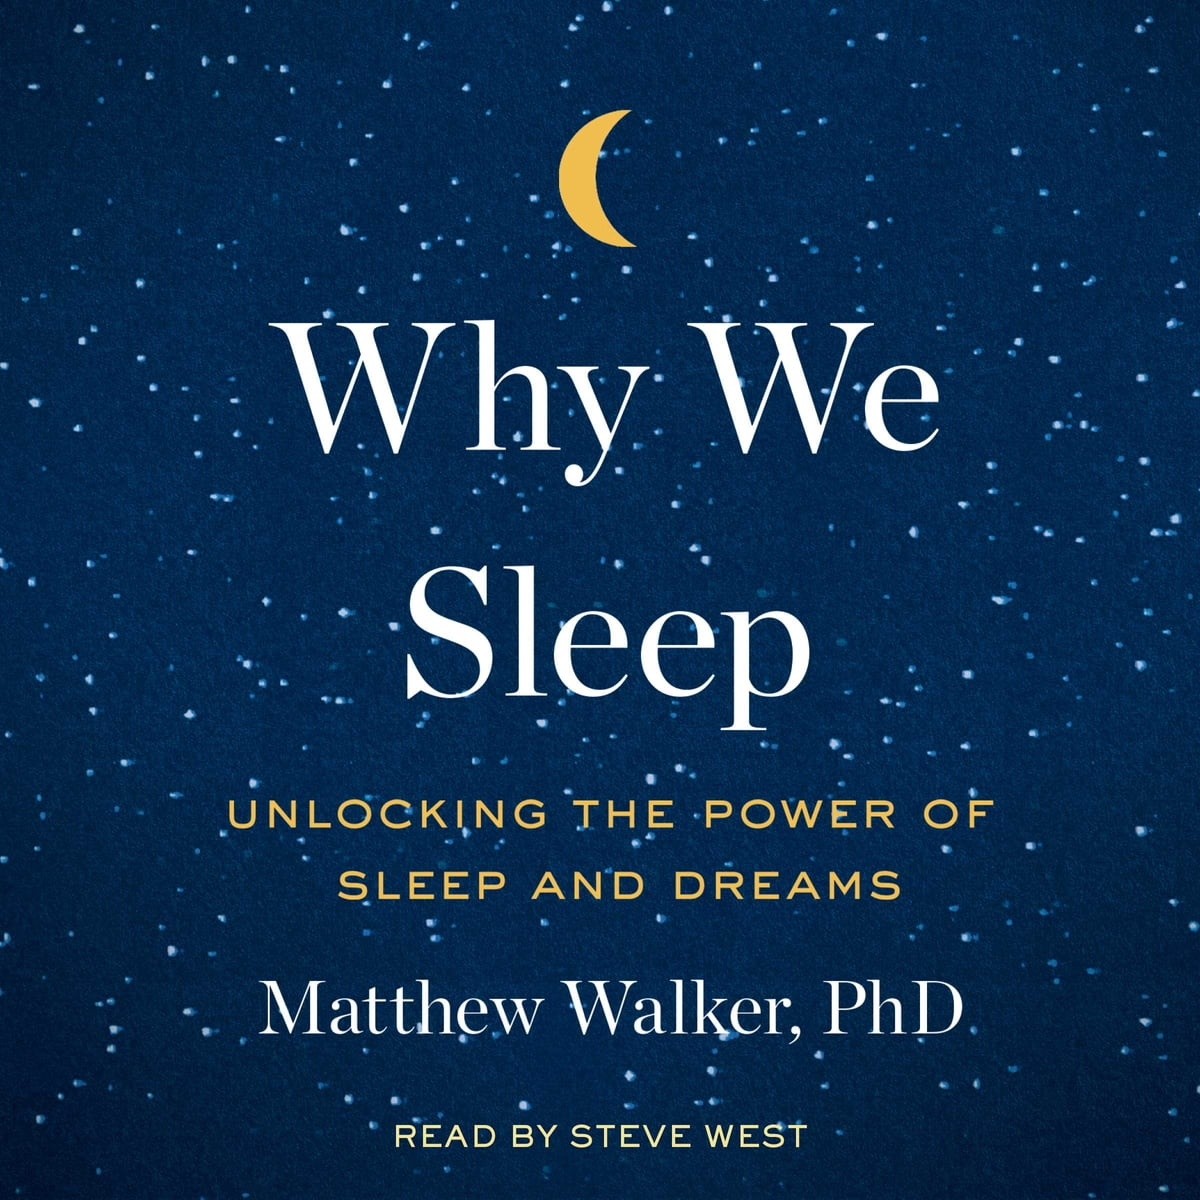 why we sleep book review